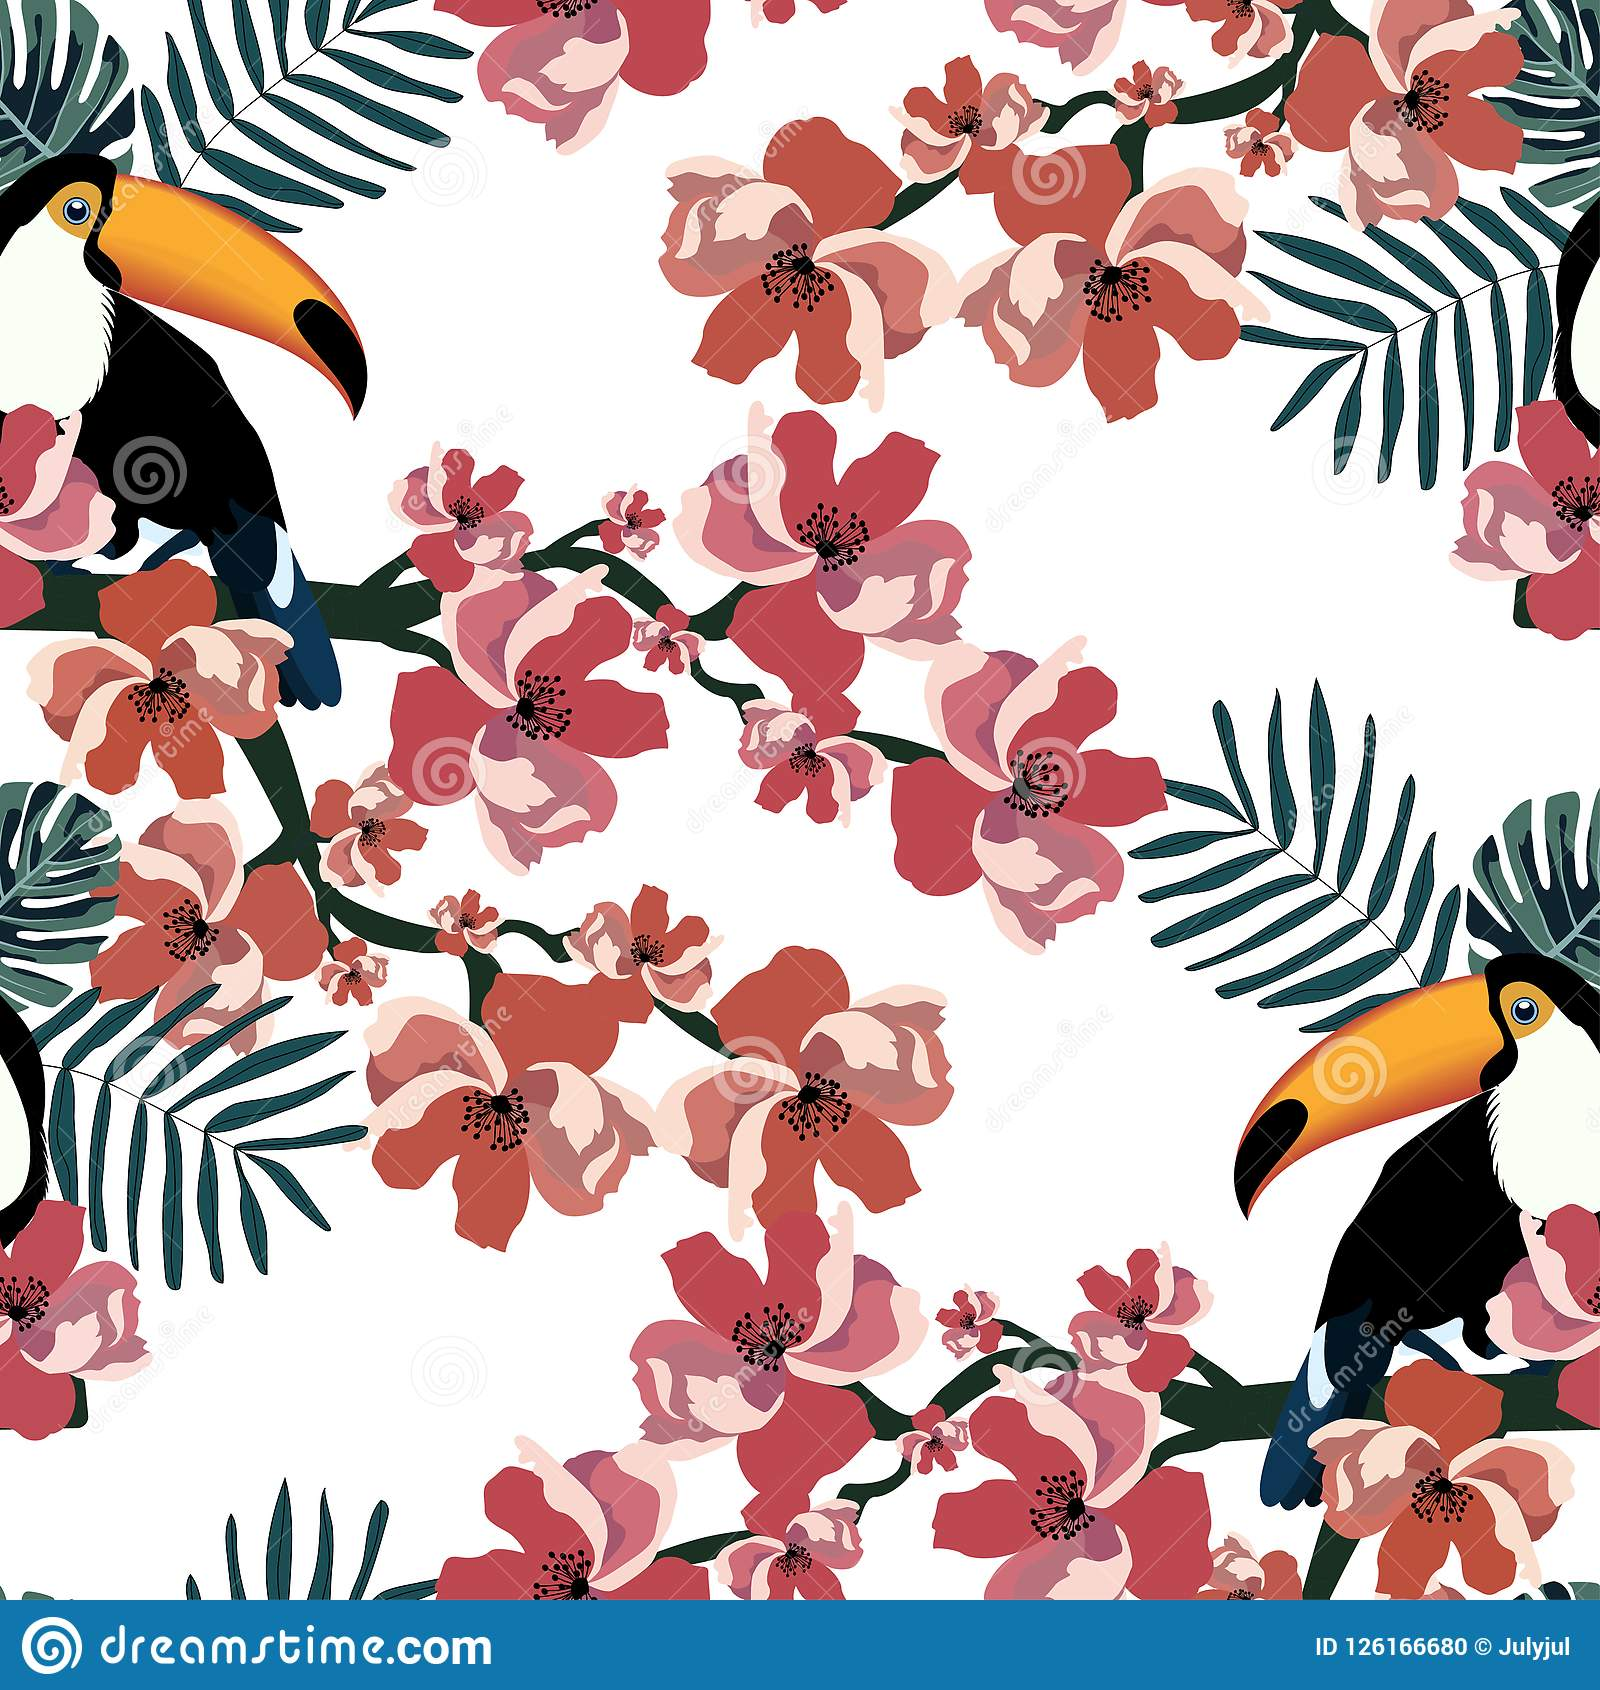 Tropical Seamless Pattern With Cute Birds Leafs And Flowers Summer Vector Background With Toucans Textile Texture Stock Vector Illustration Of Funny Flowerssummer 126166680